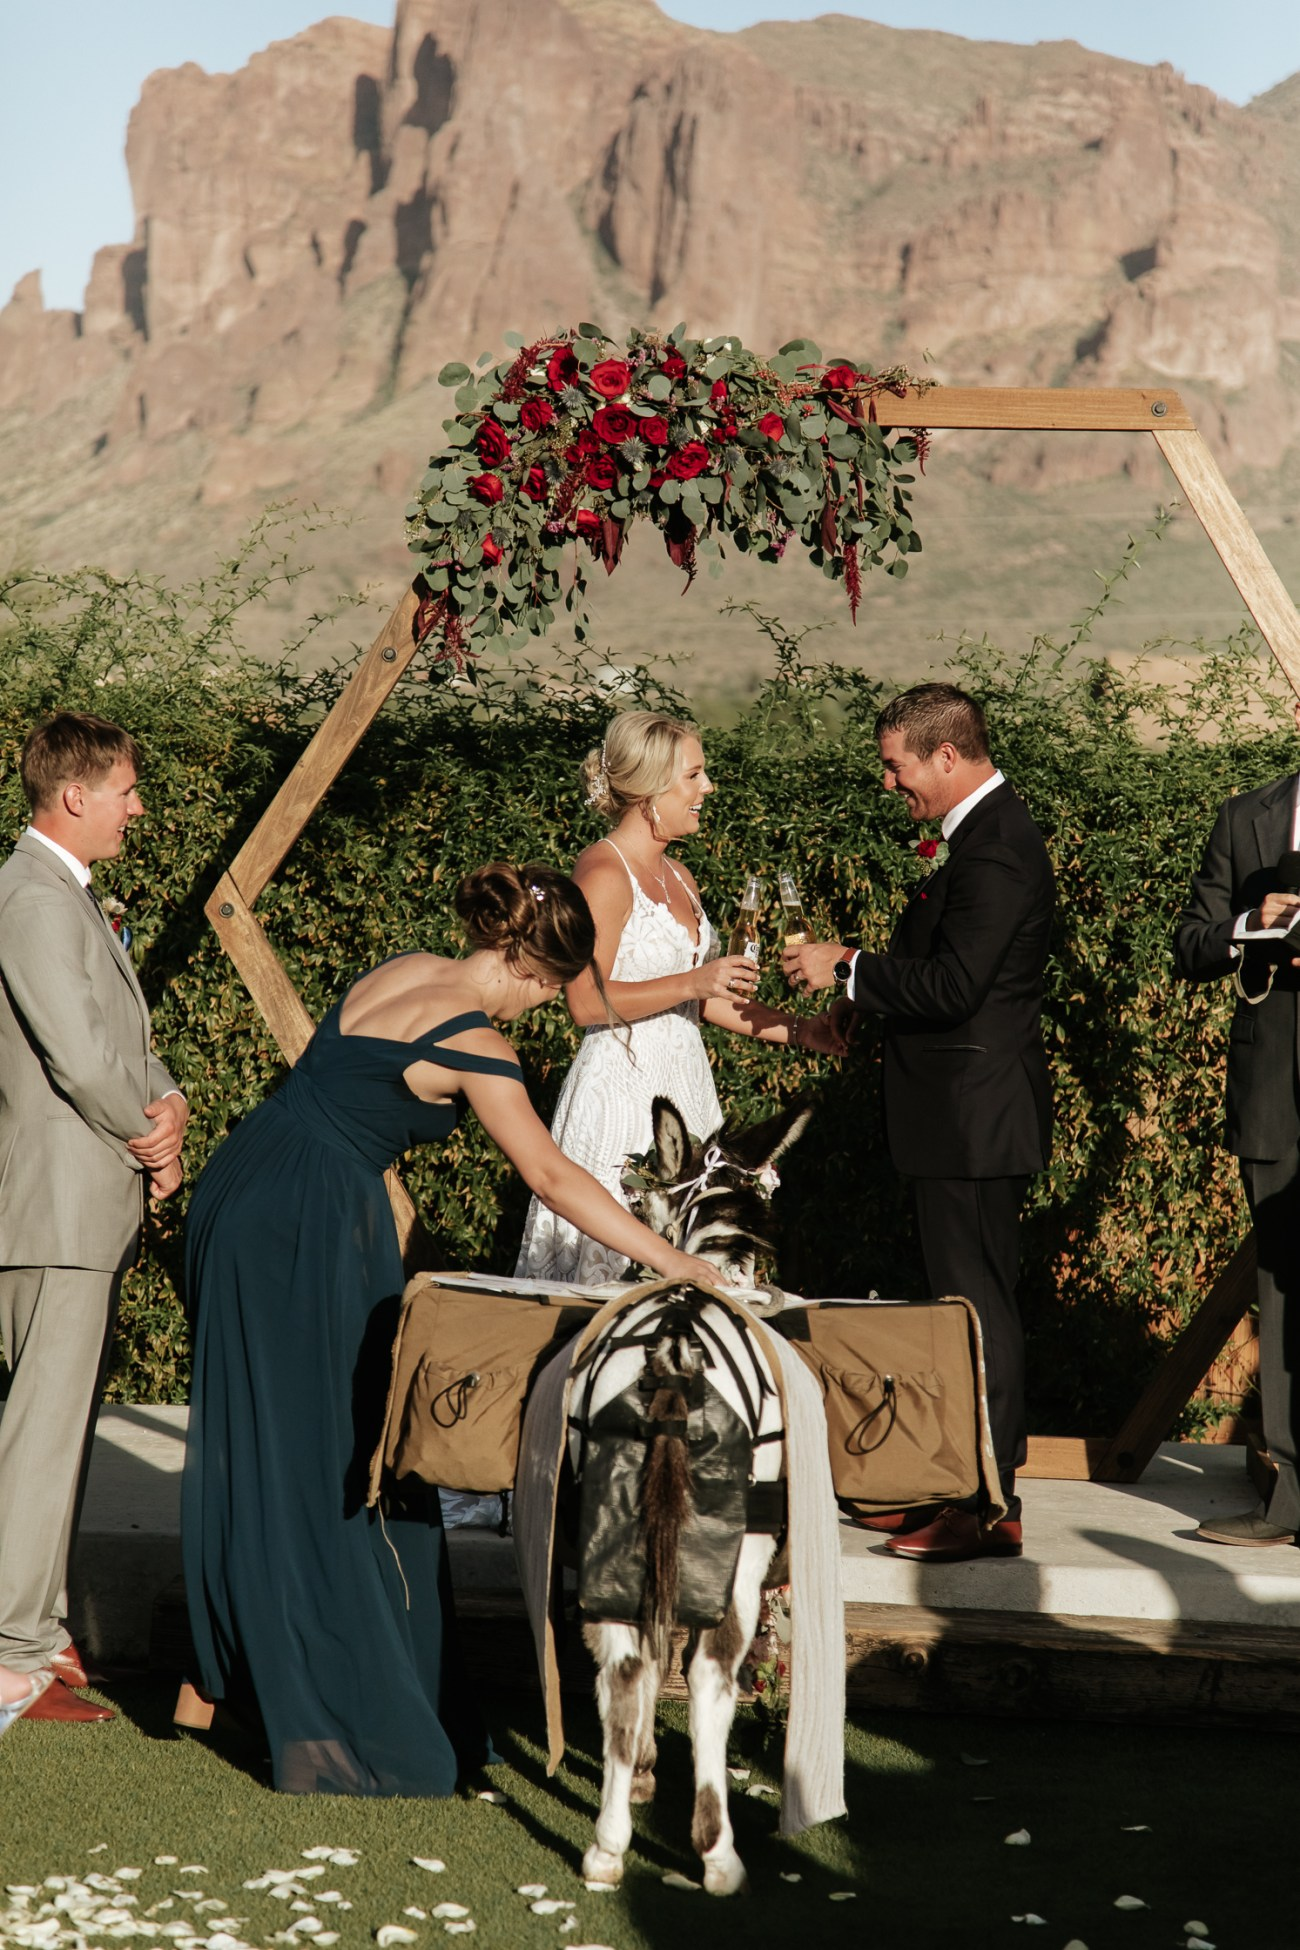 Megan Claire Photography | Arizona Wedding Photographer. Beautiful fall wedding in the desert at the Paseo in Apache Junction, Arizona near superstition mountains. Beer burro @meganclairephoto